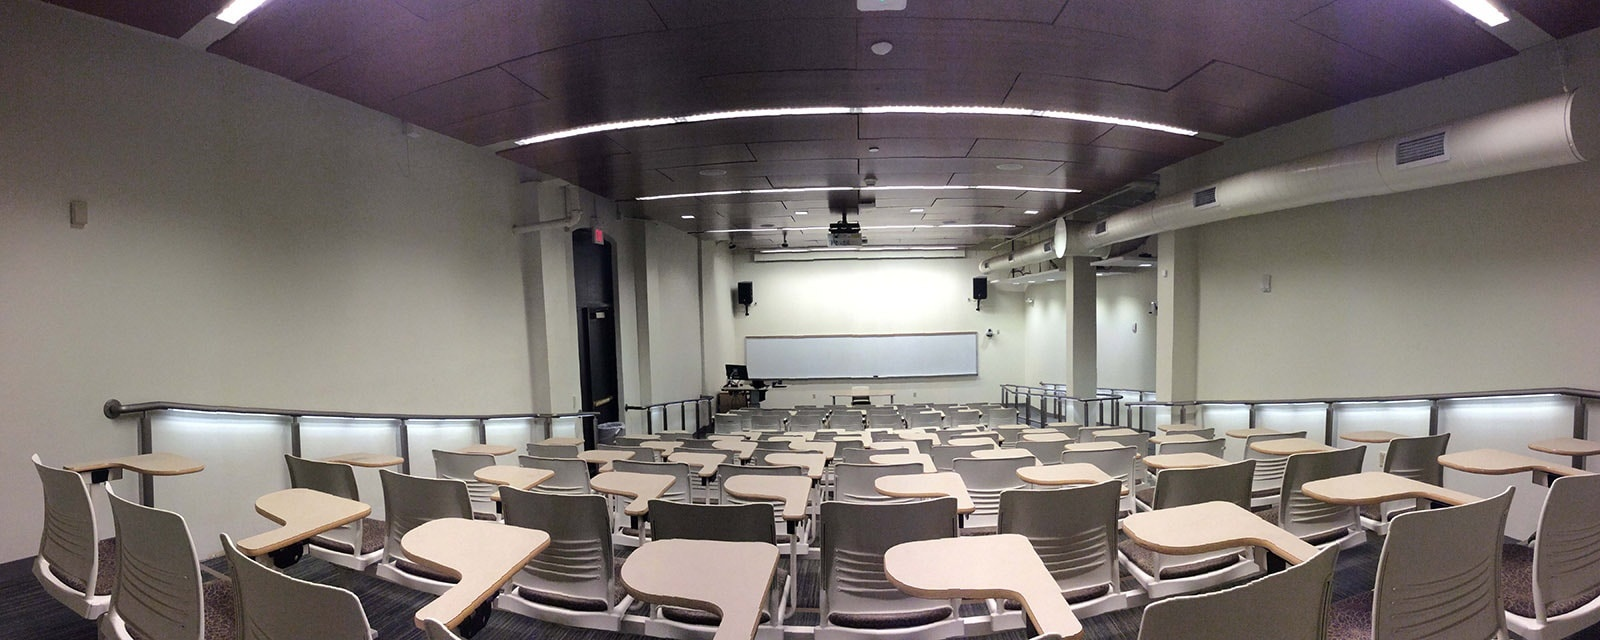 Panorama of Carnegie 122 from rear to front, chairs stationary with desk attached, teaching station at front, left of entrance